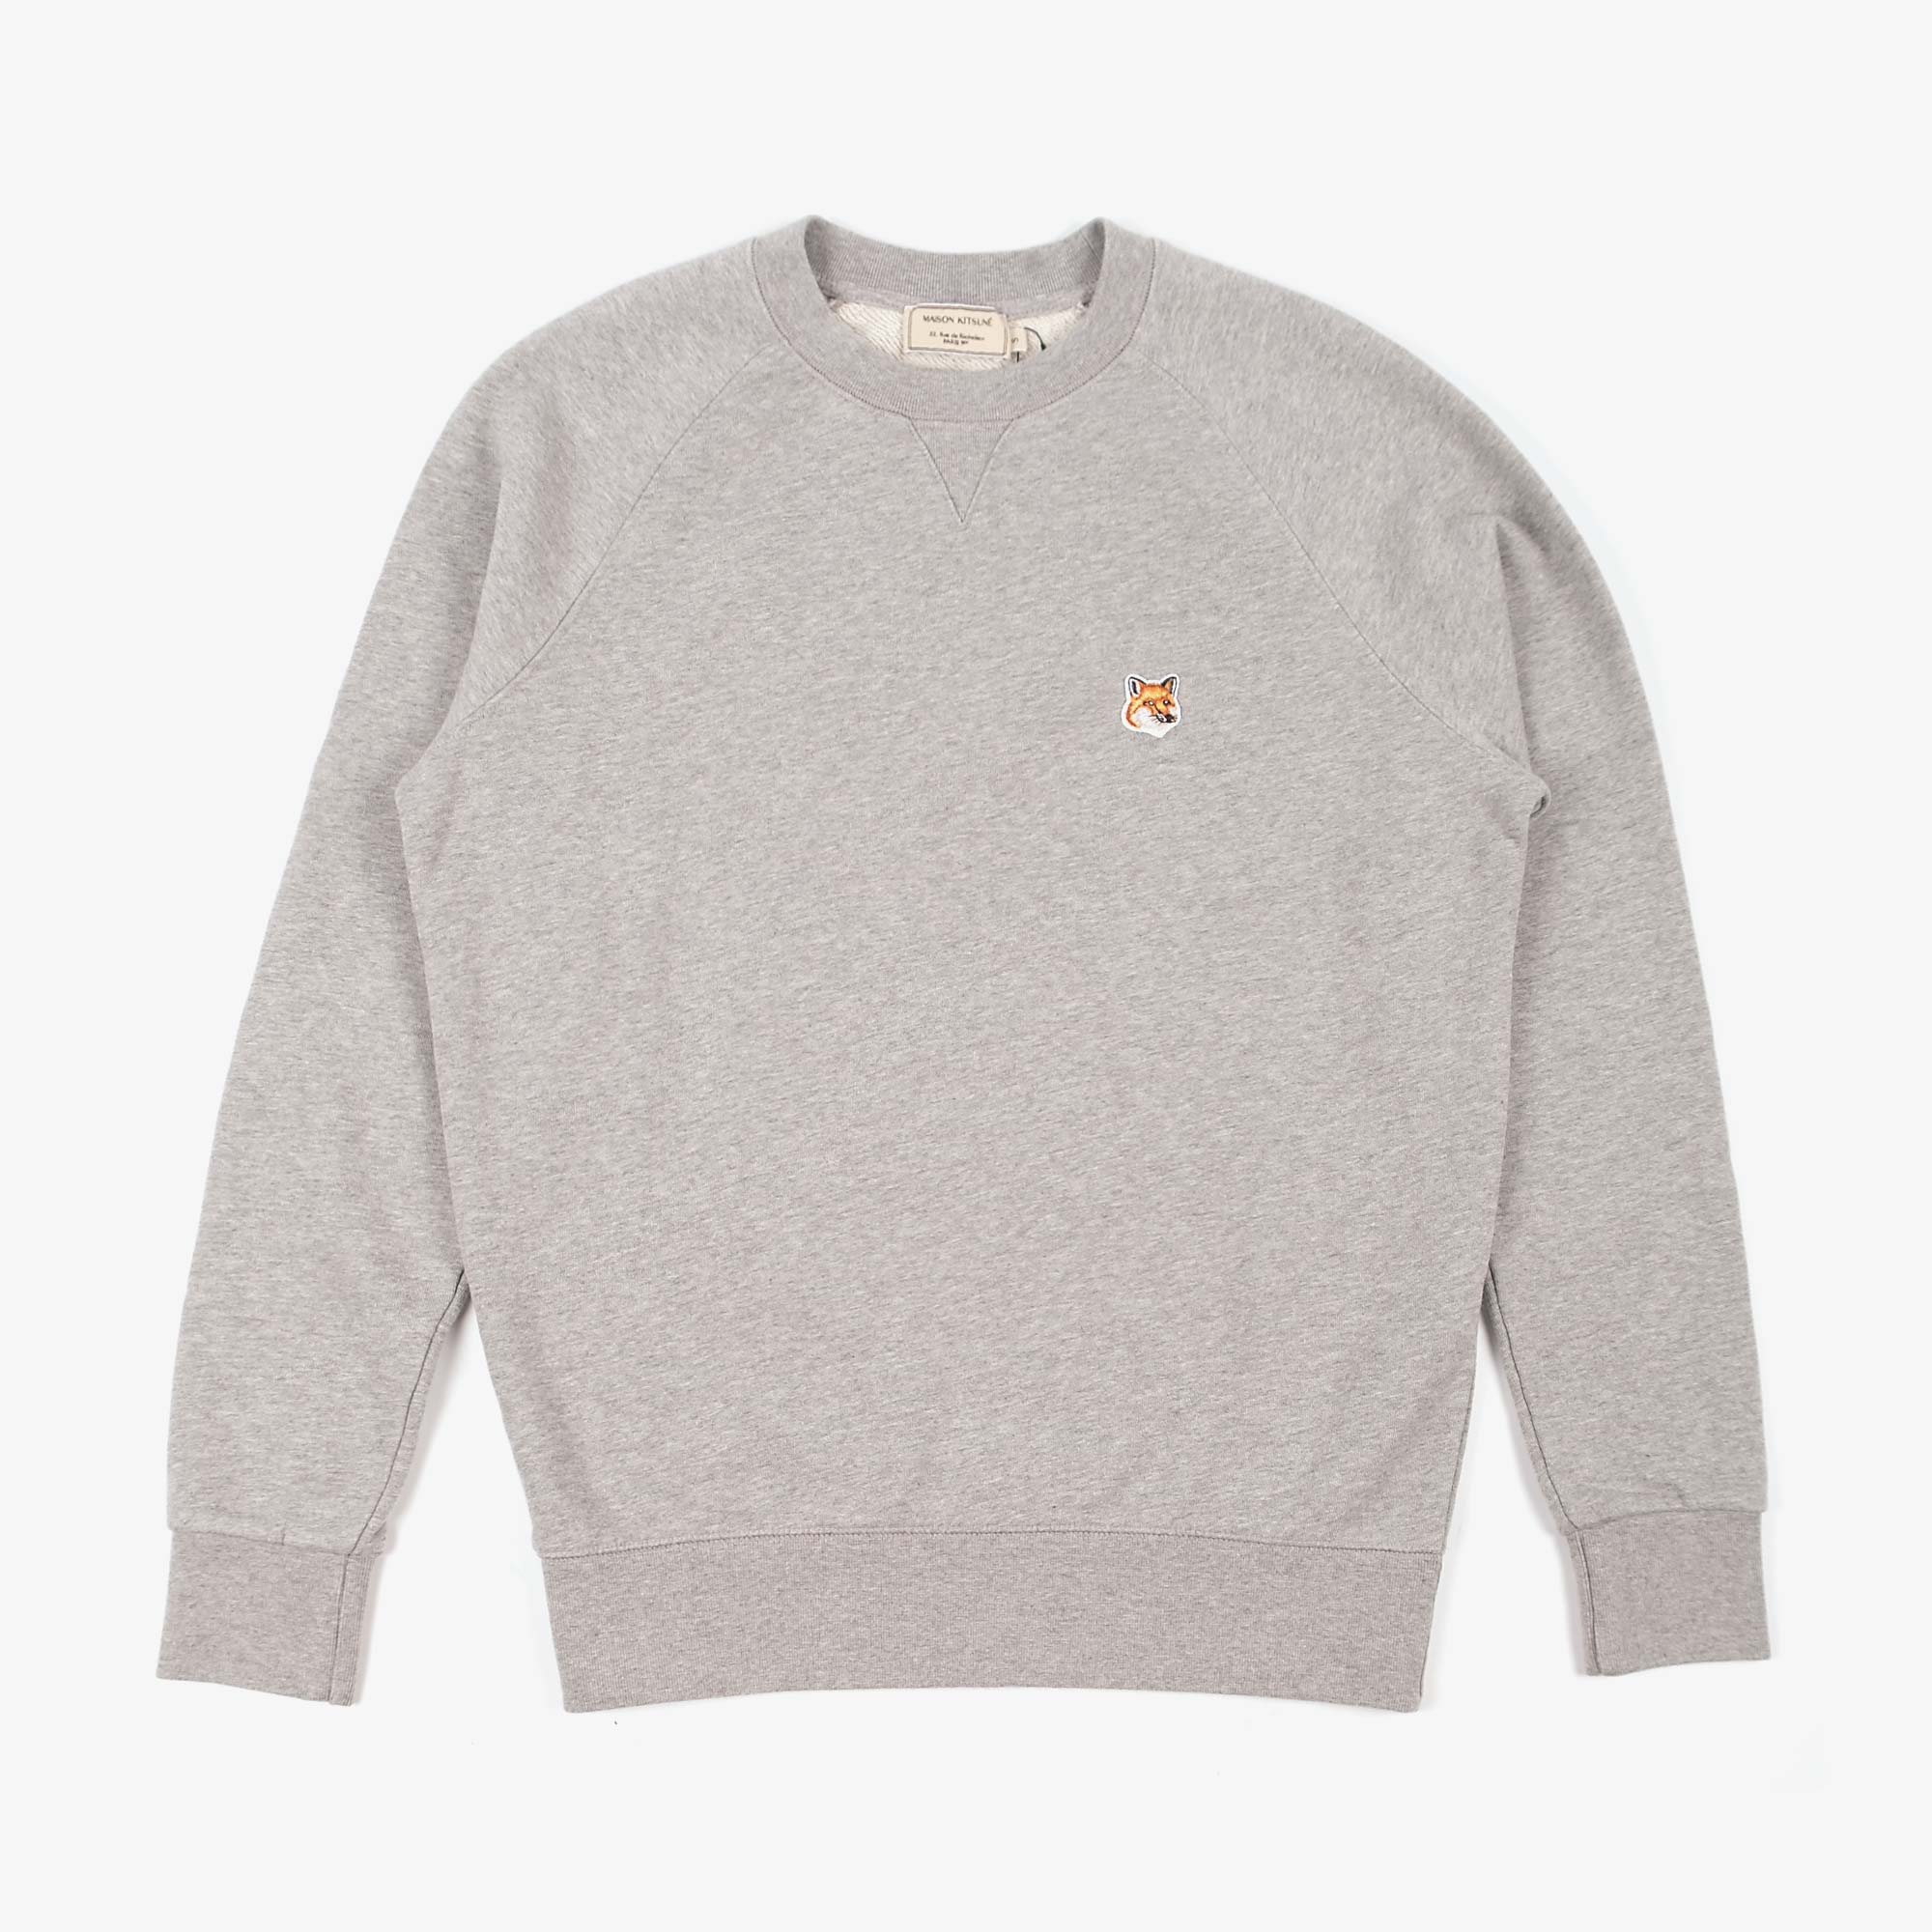 Maison Kitsune Mens Fox Head Patch Sweatshirt - Grey Melange 1